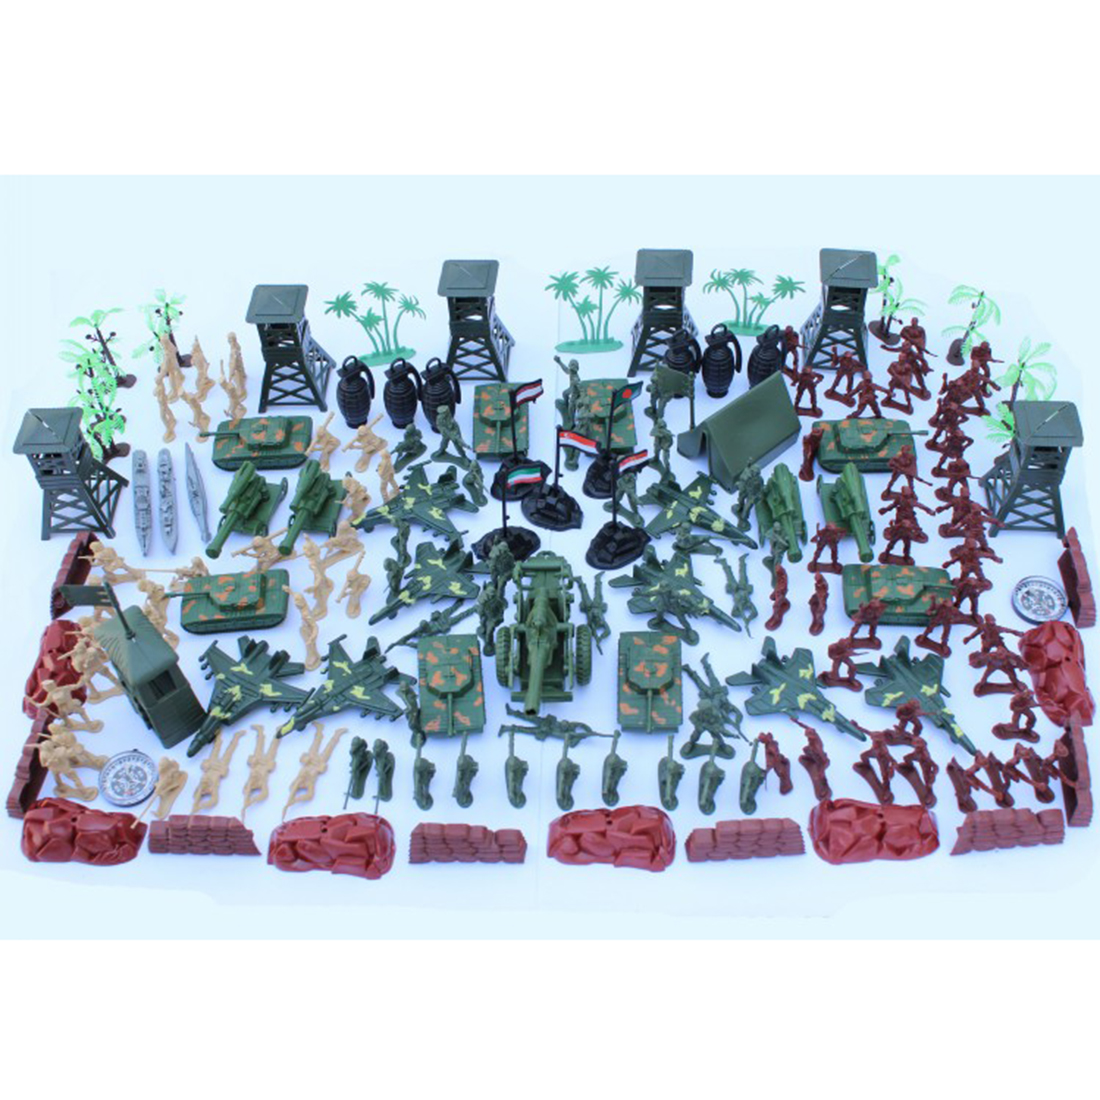 Christmas Gift 167Pcs 5cm Plastic Soldier Model World War II Soldier Military Toy Set Children Looking For During For A Little